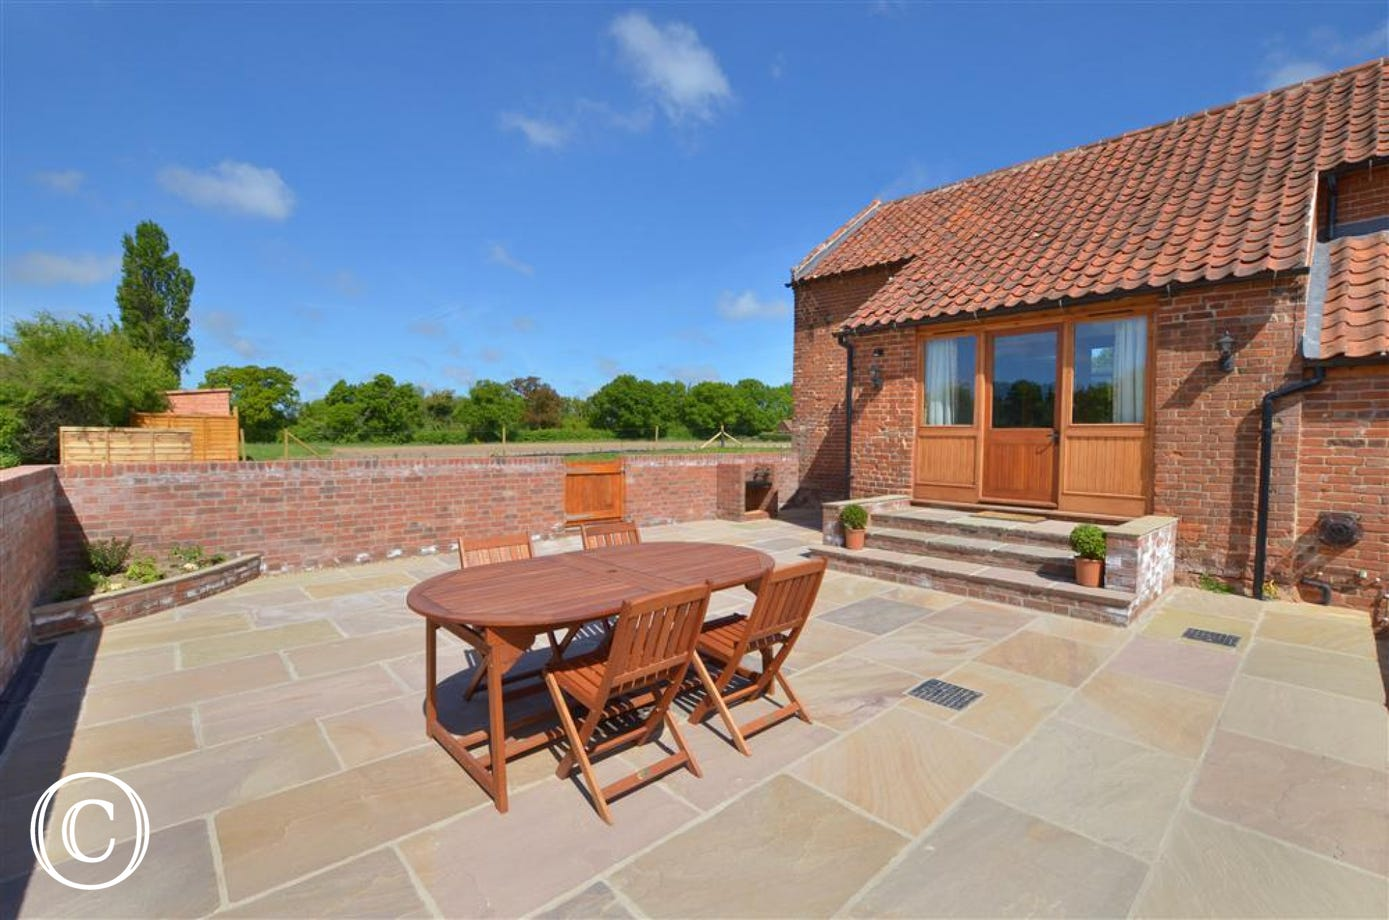 Fully paved, large patio area which is enclosed and has garden furniture and barbecue